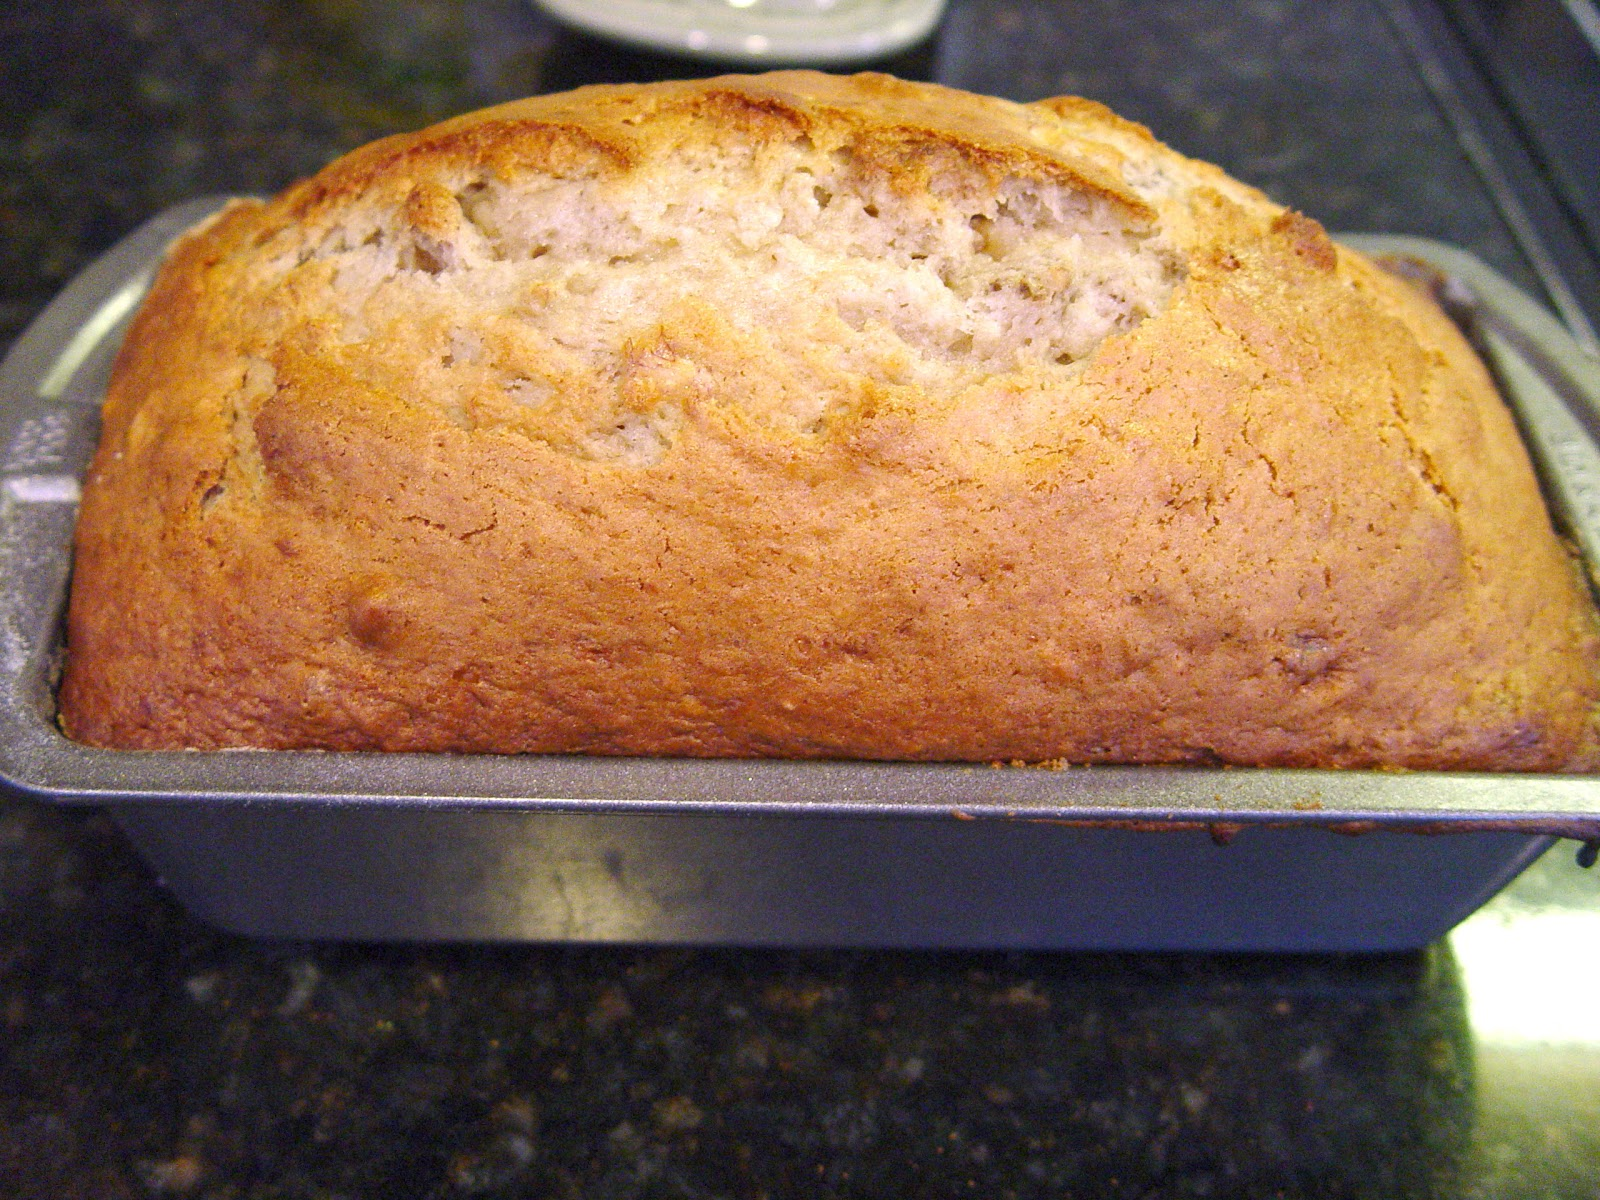 Old Fashioned Banana Nut Bread 101 Cooking For Two